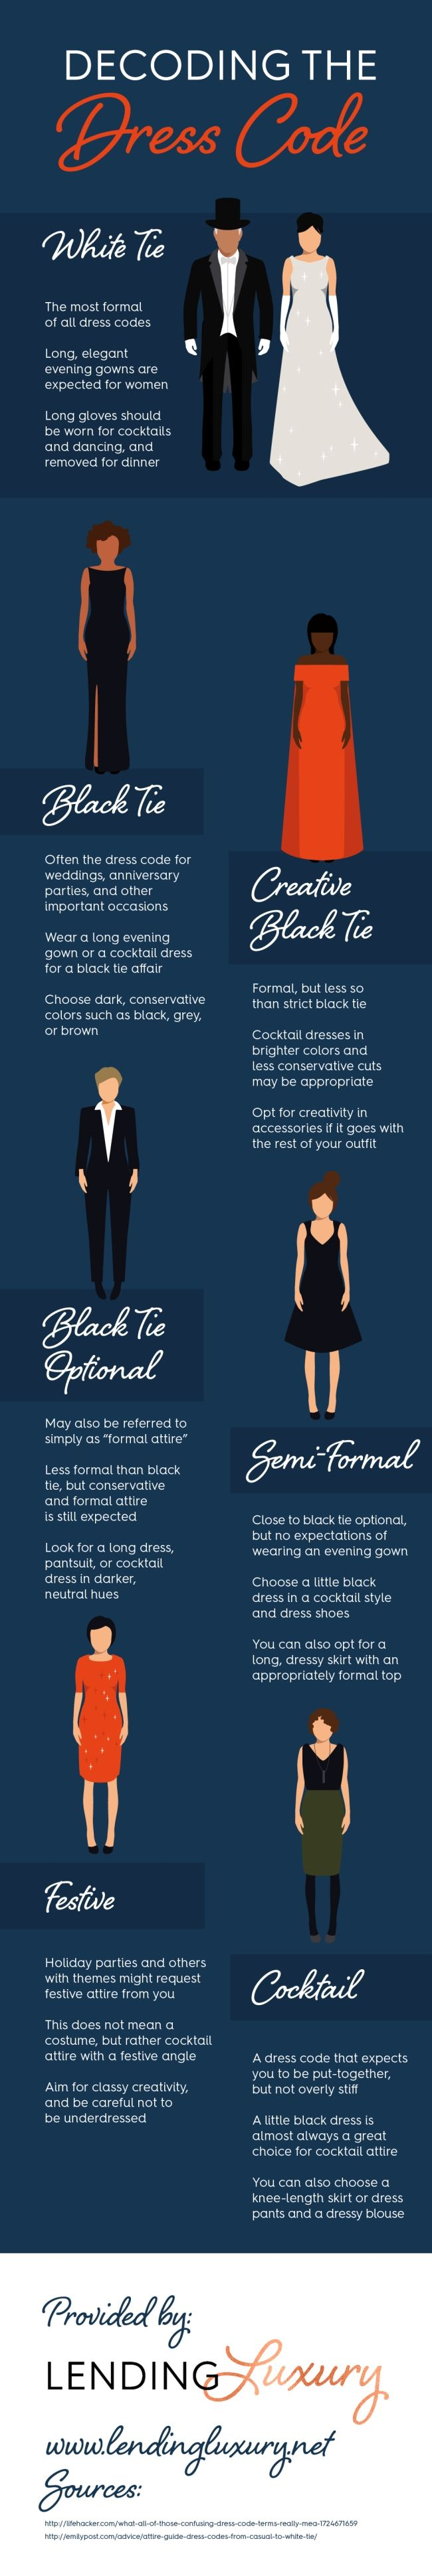 The dress explained - From Cocktail To White Tie Complicated Dress Codes Explained Infographic